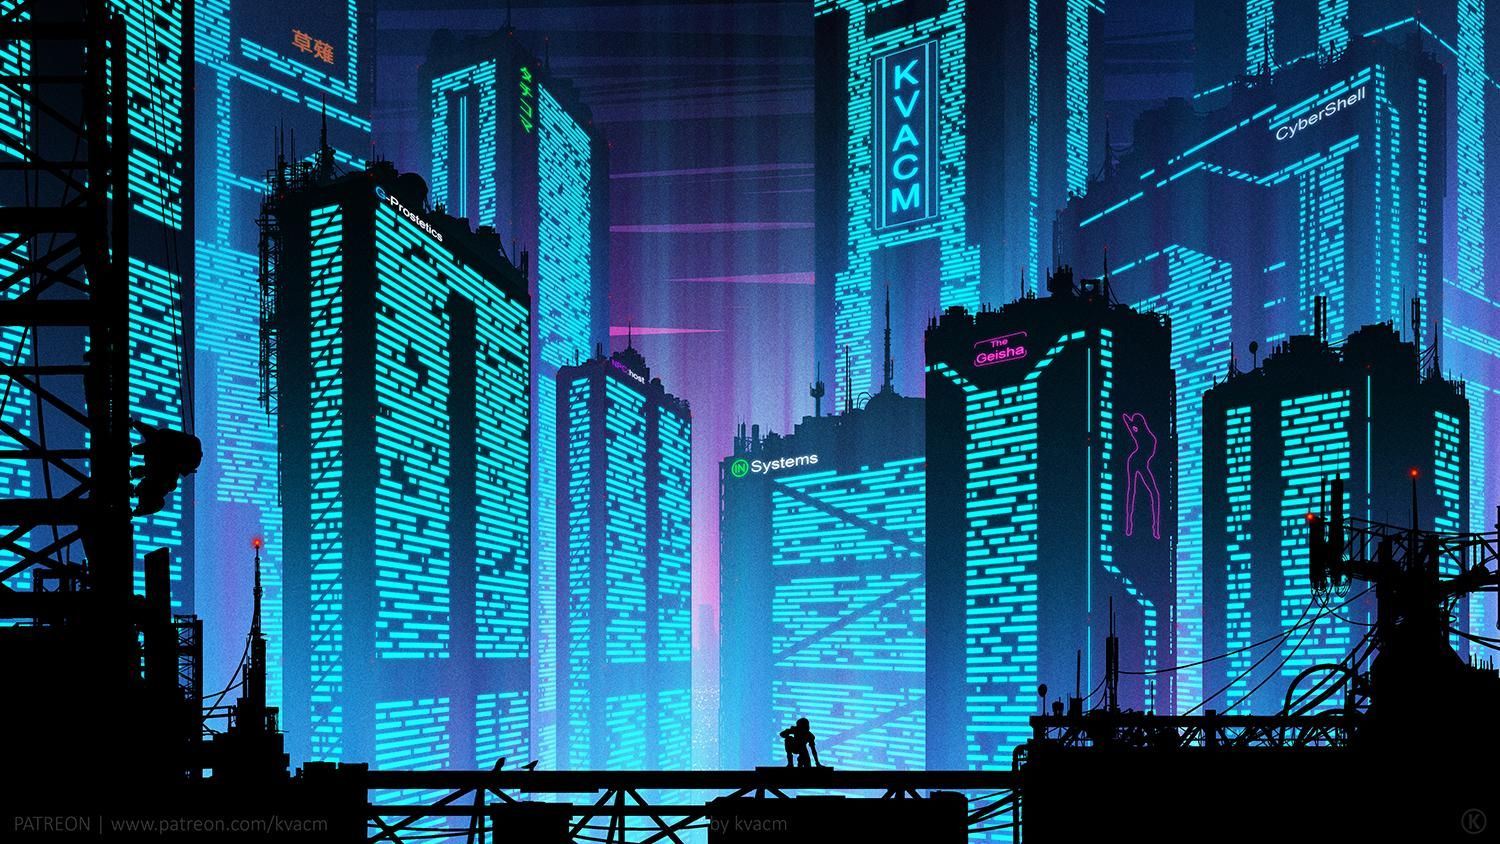 Five Days Spend On City Form Ghost In The Shell Ghost In The Shell Cyberpunk City Futuristic City